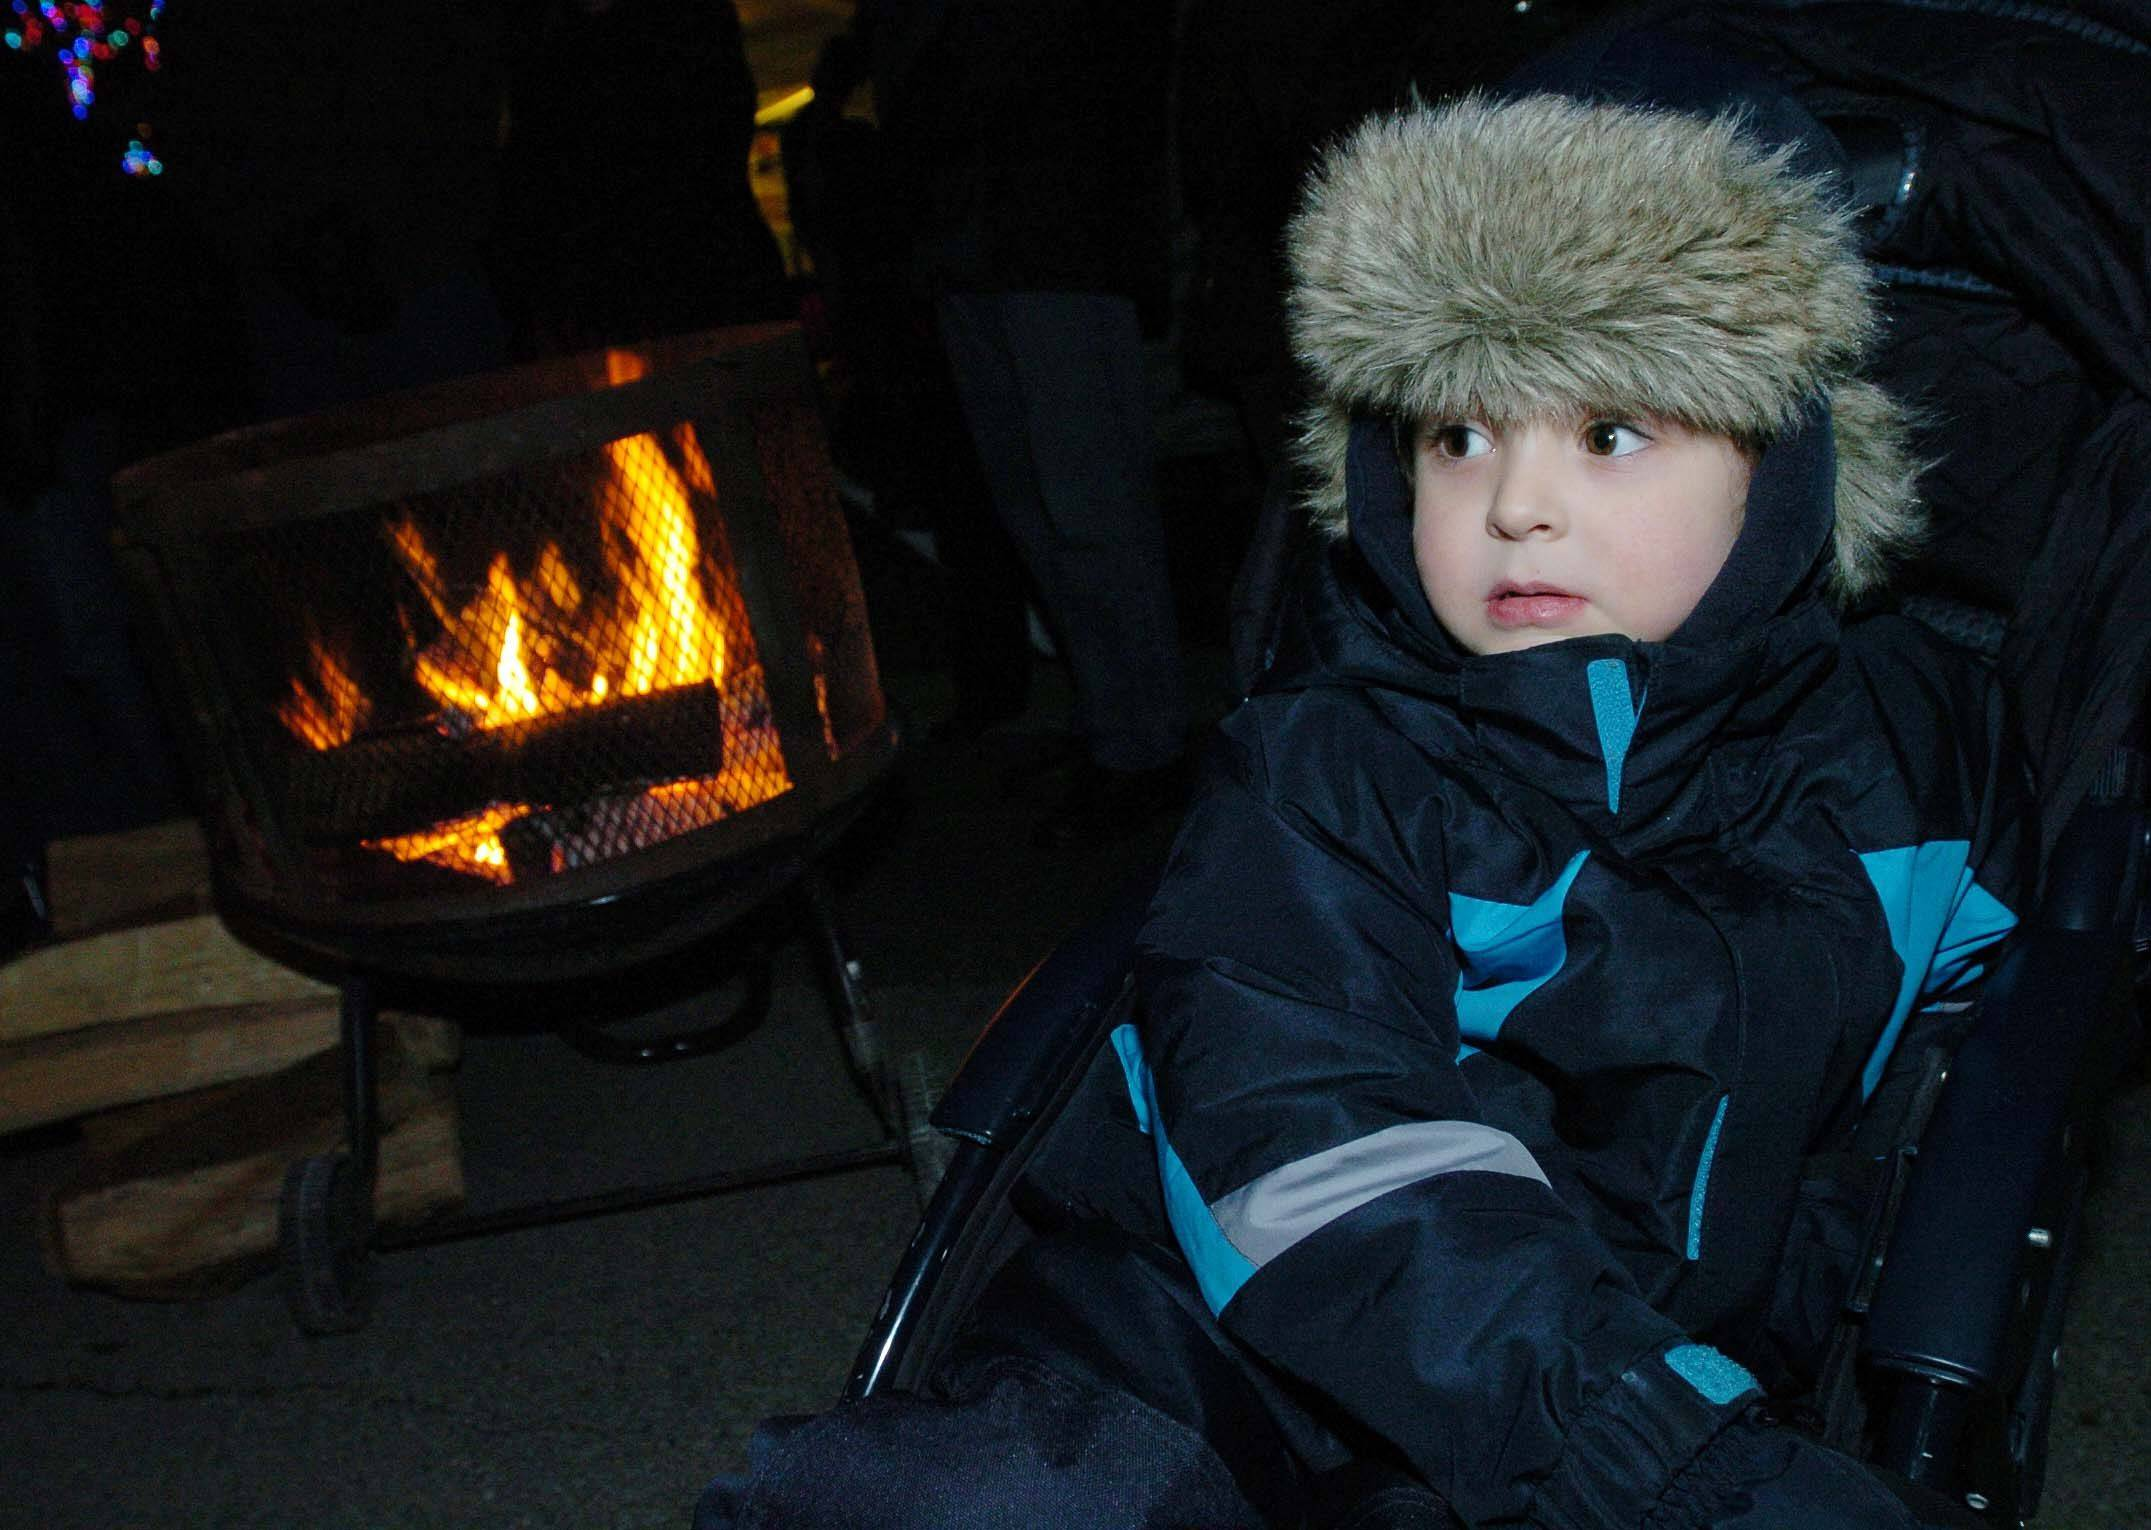 John Ogan, 4, of Warrenville keeps warm by the fire while waiting for Santa to show during Holly Days in Warrenville Friday.